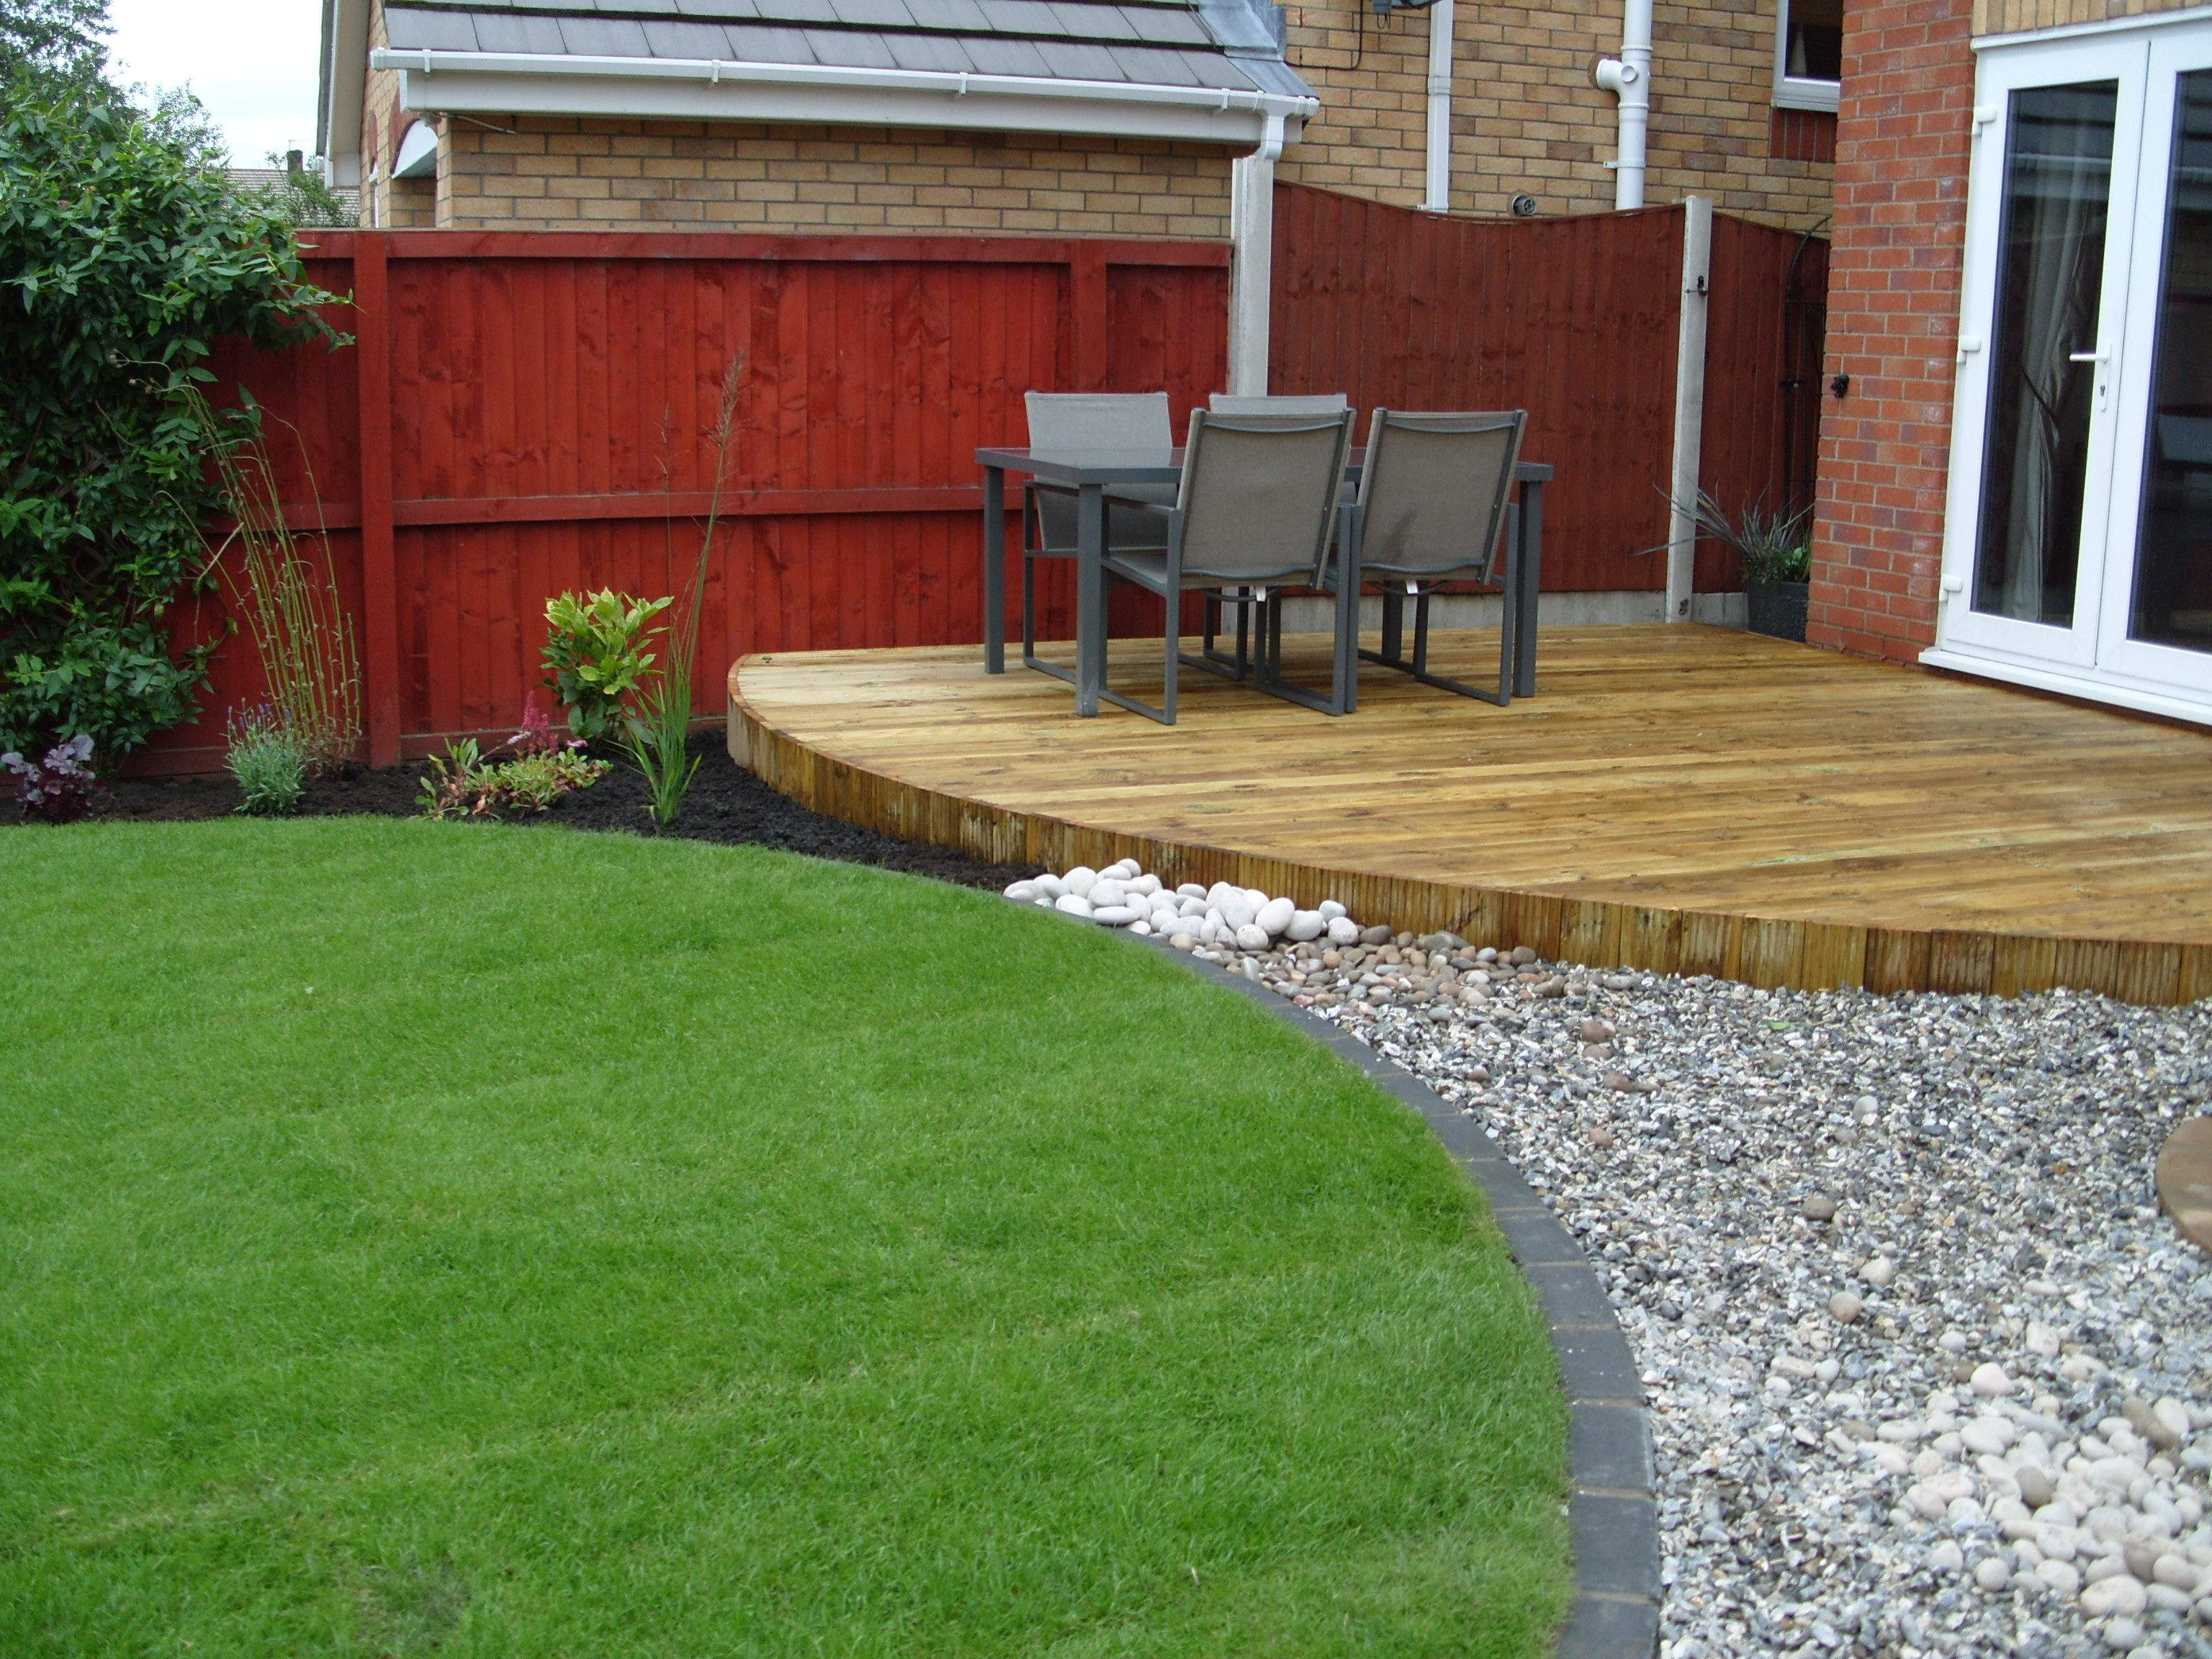 Decking Designs For Small Gardens small family garden : angie barker trading as garden design for